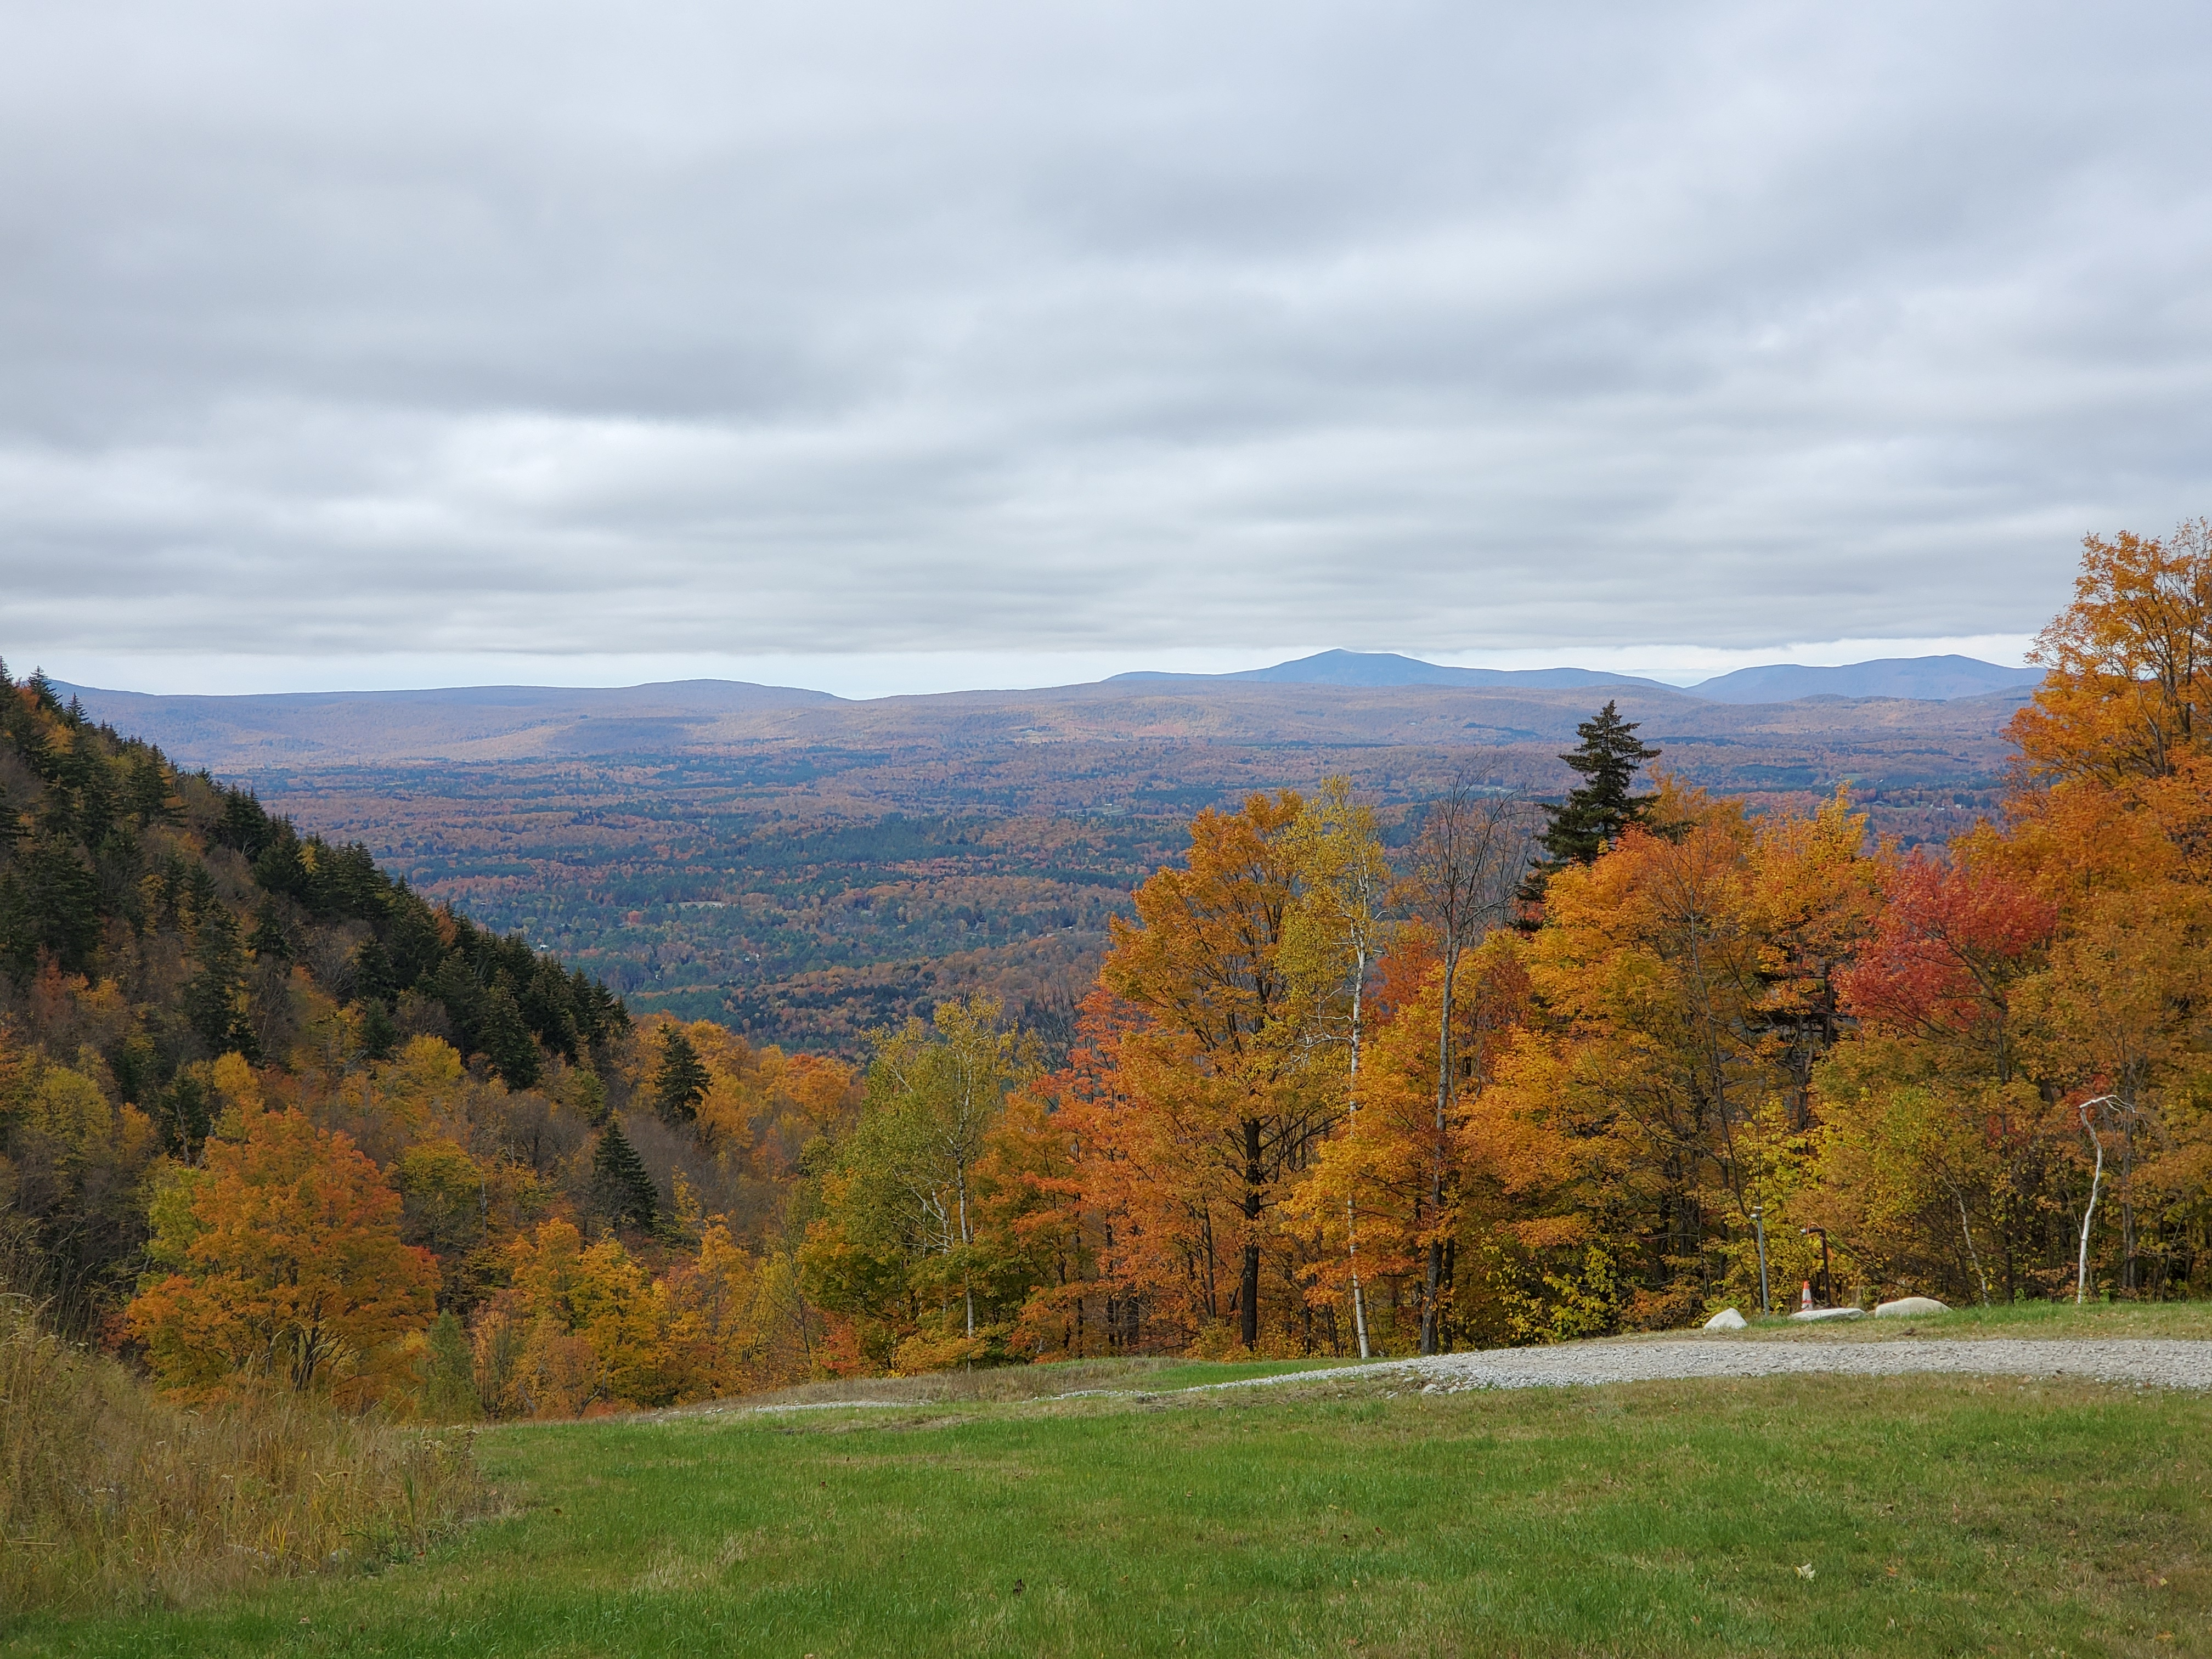 2019/10/12 - View from Magic Mountain in Londonderry, VT - by Renee-Marie Smith